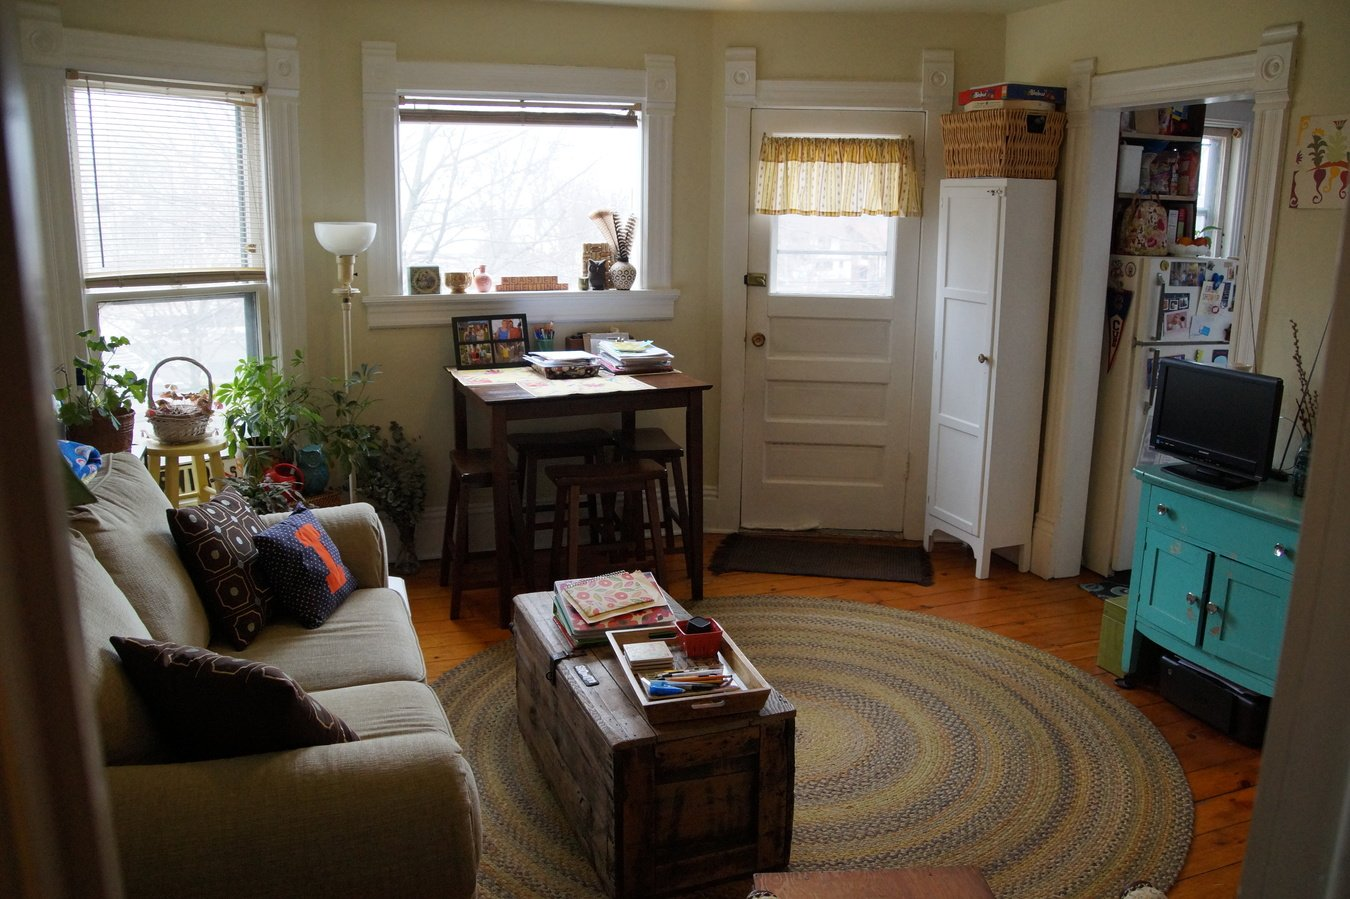 2 Bedrooms 1 Bathroom Apartment for rent at 947 E Gorham in Madison, WI